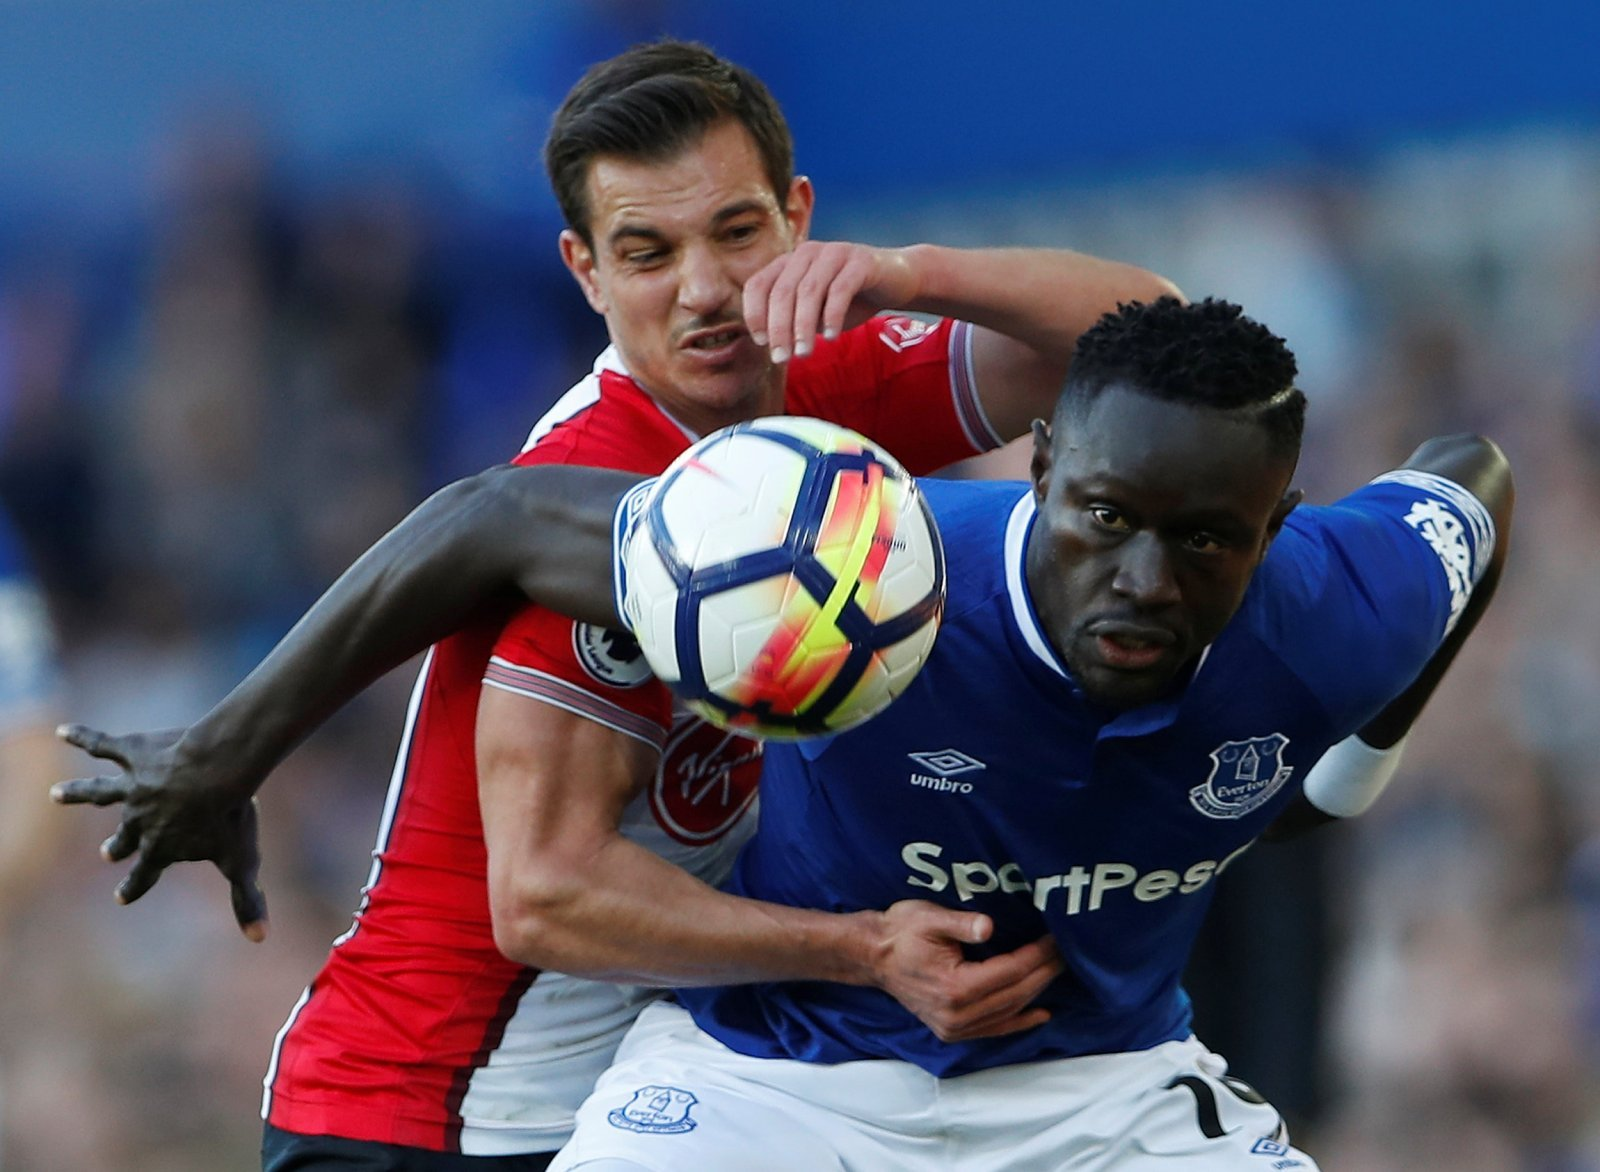 Everton should listen to offers for Niasse regardless of being unable to bring in a replacement